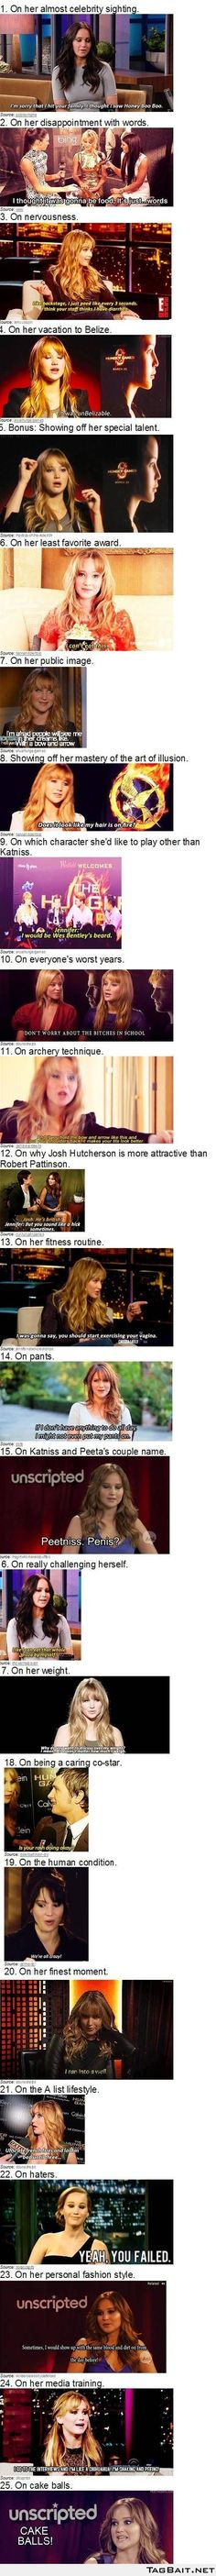 The 25 Best Jennifer Lawrence Quotes Of 2012 - She is absolutely hilarious.